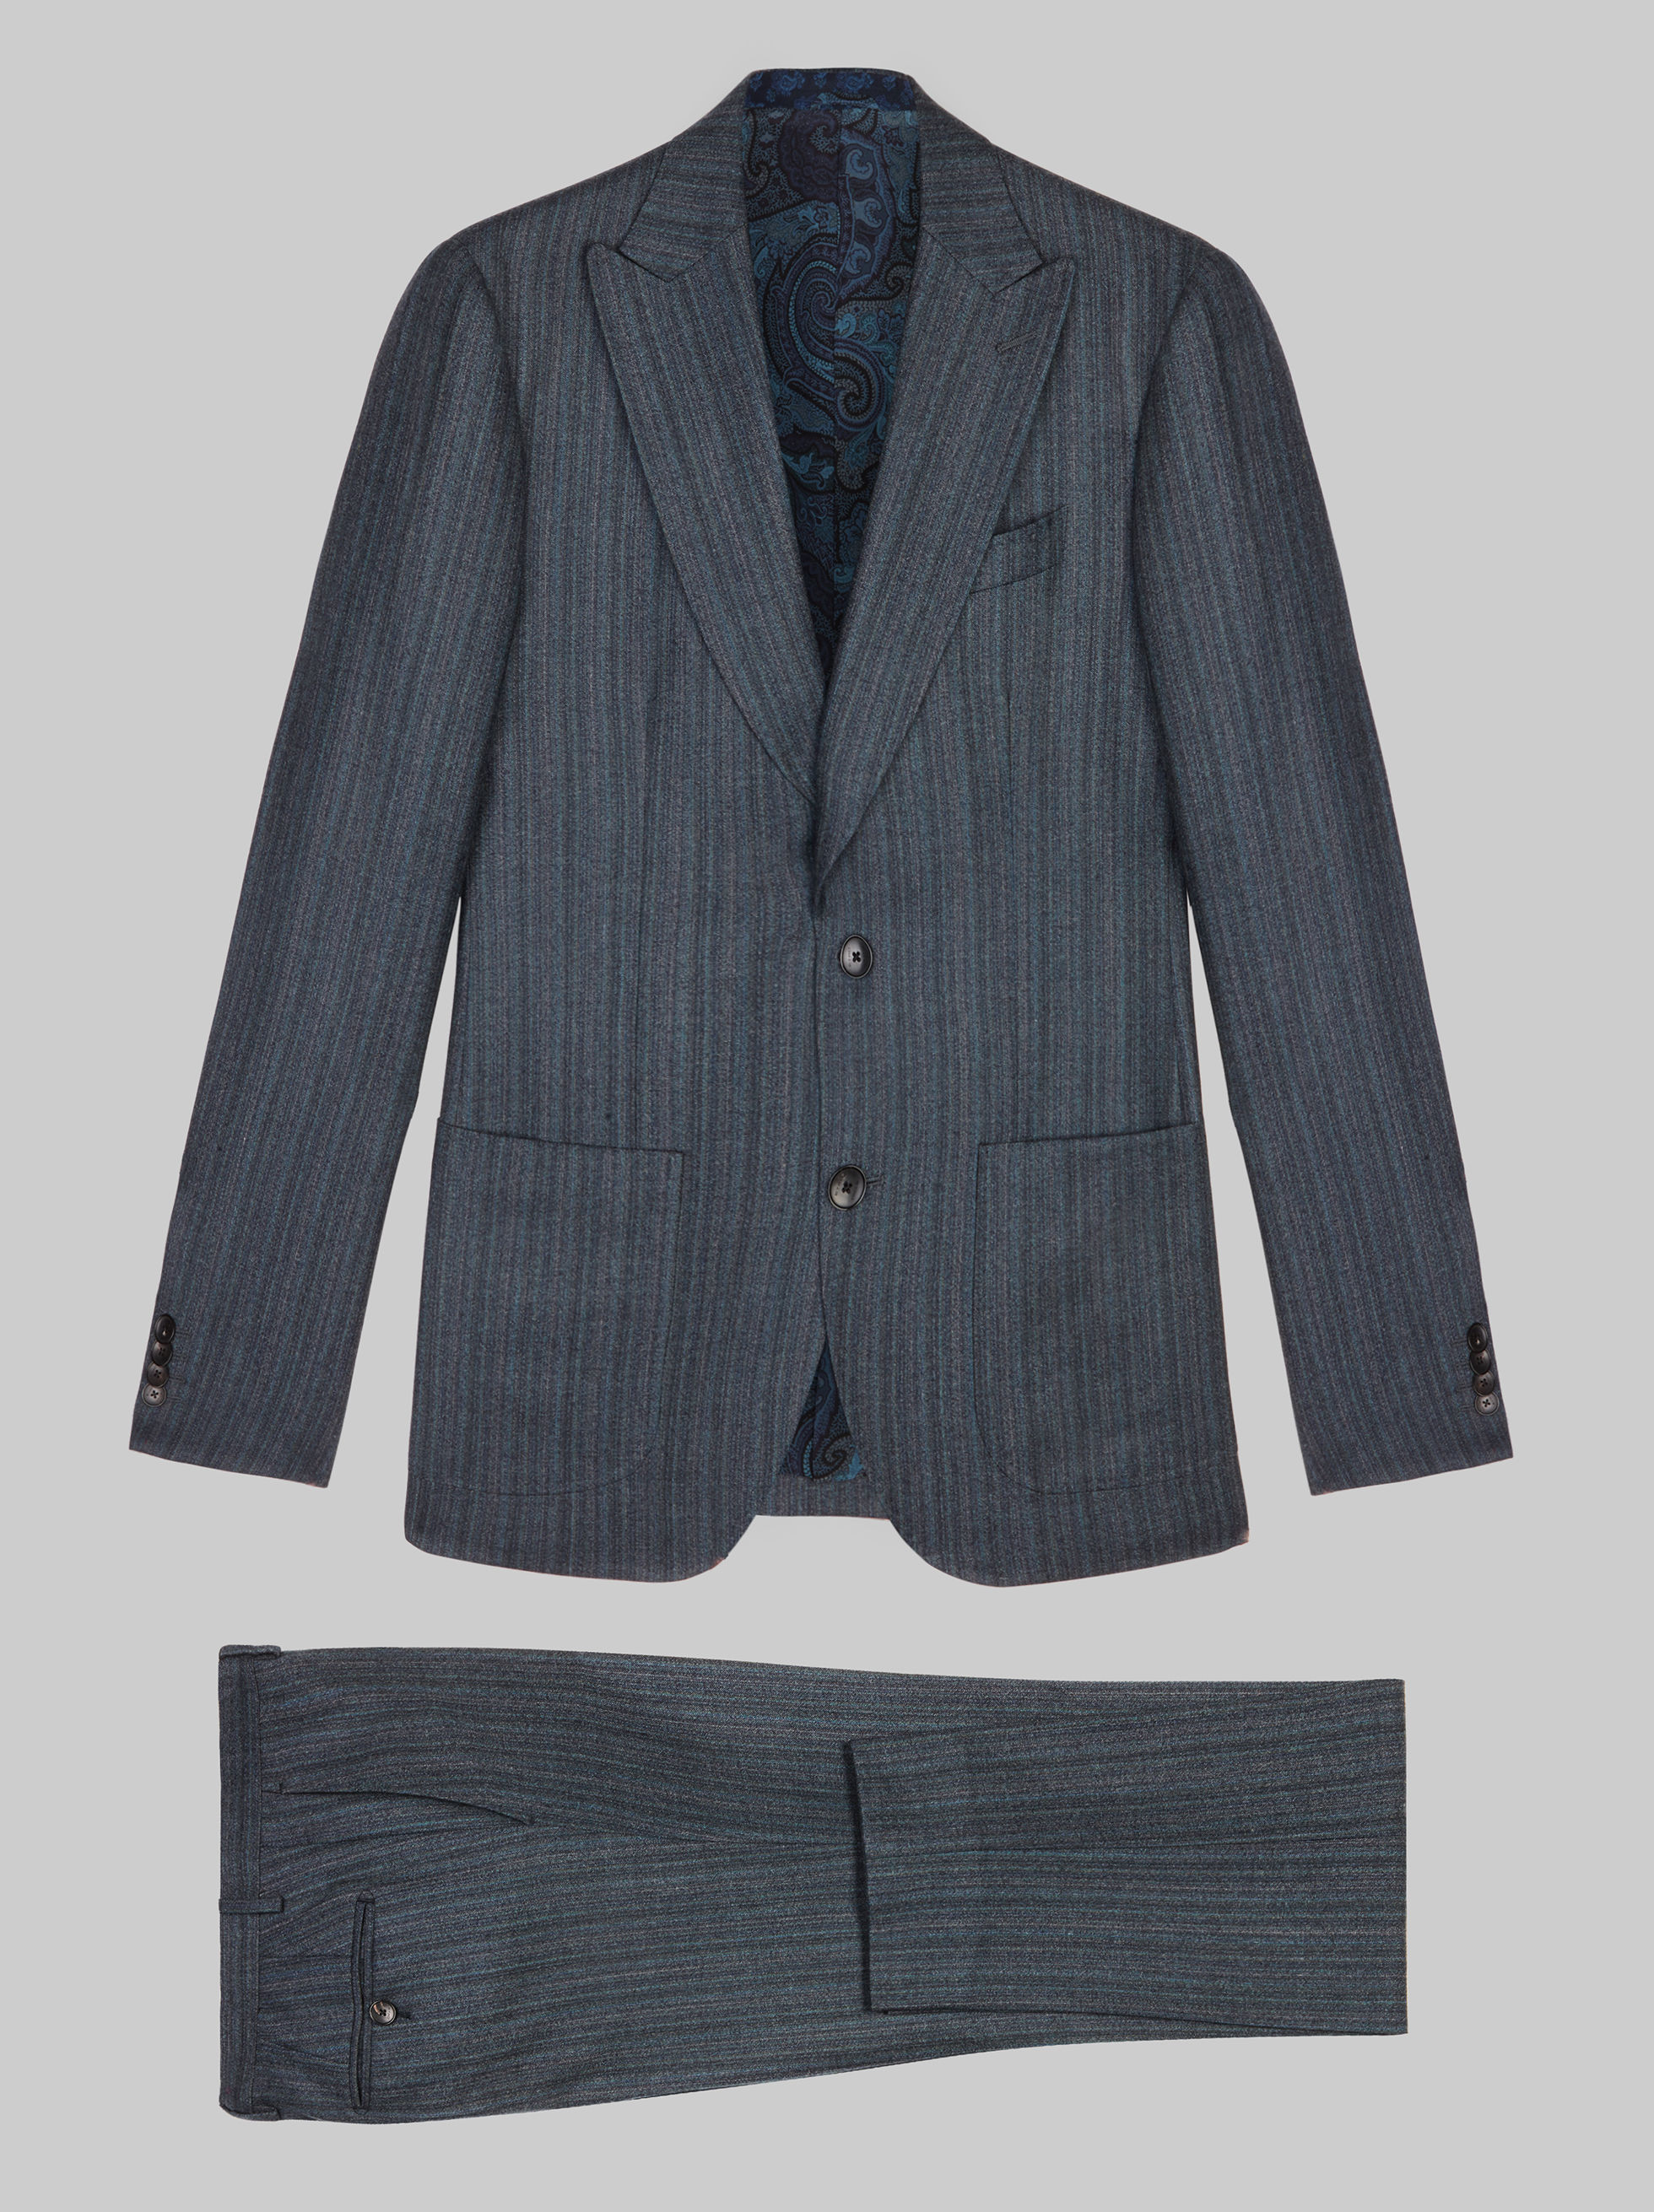 DECONSTRUCTED SUIT